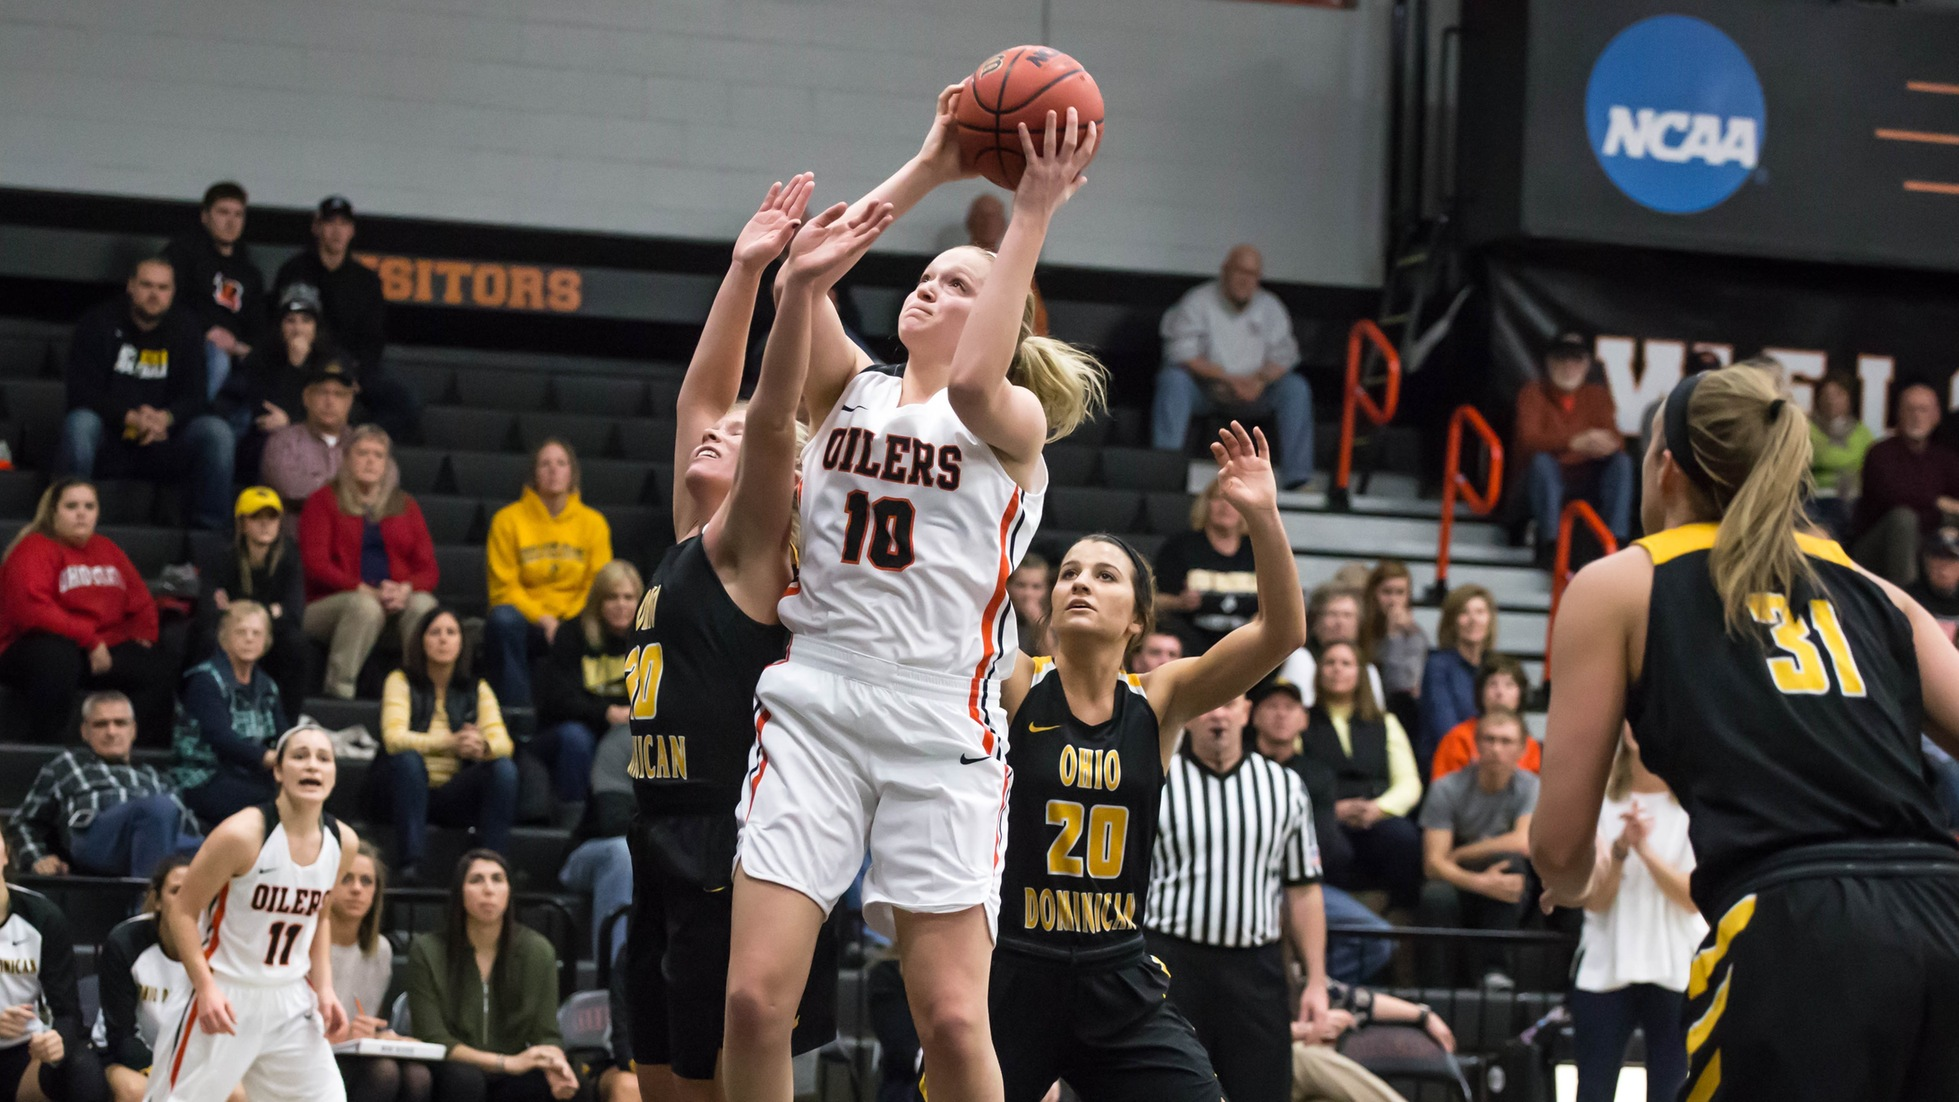 Oilers Stumble at Hillsdale